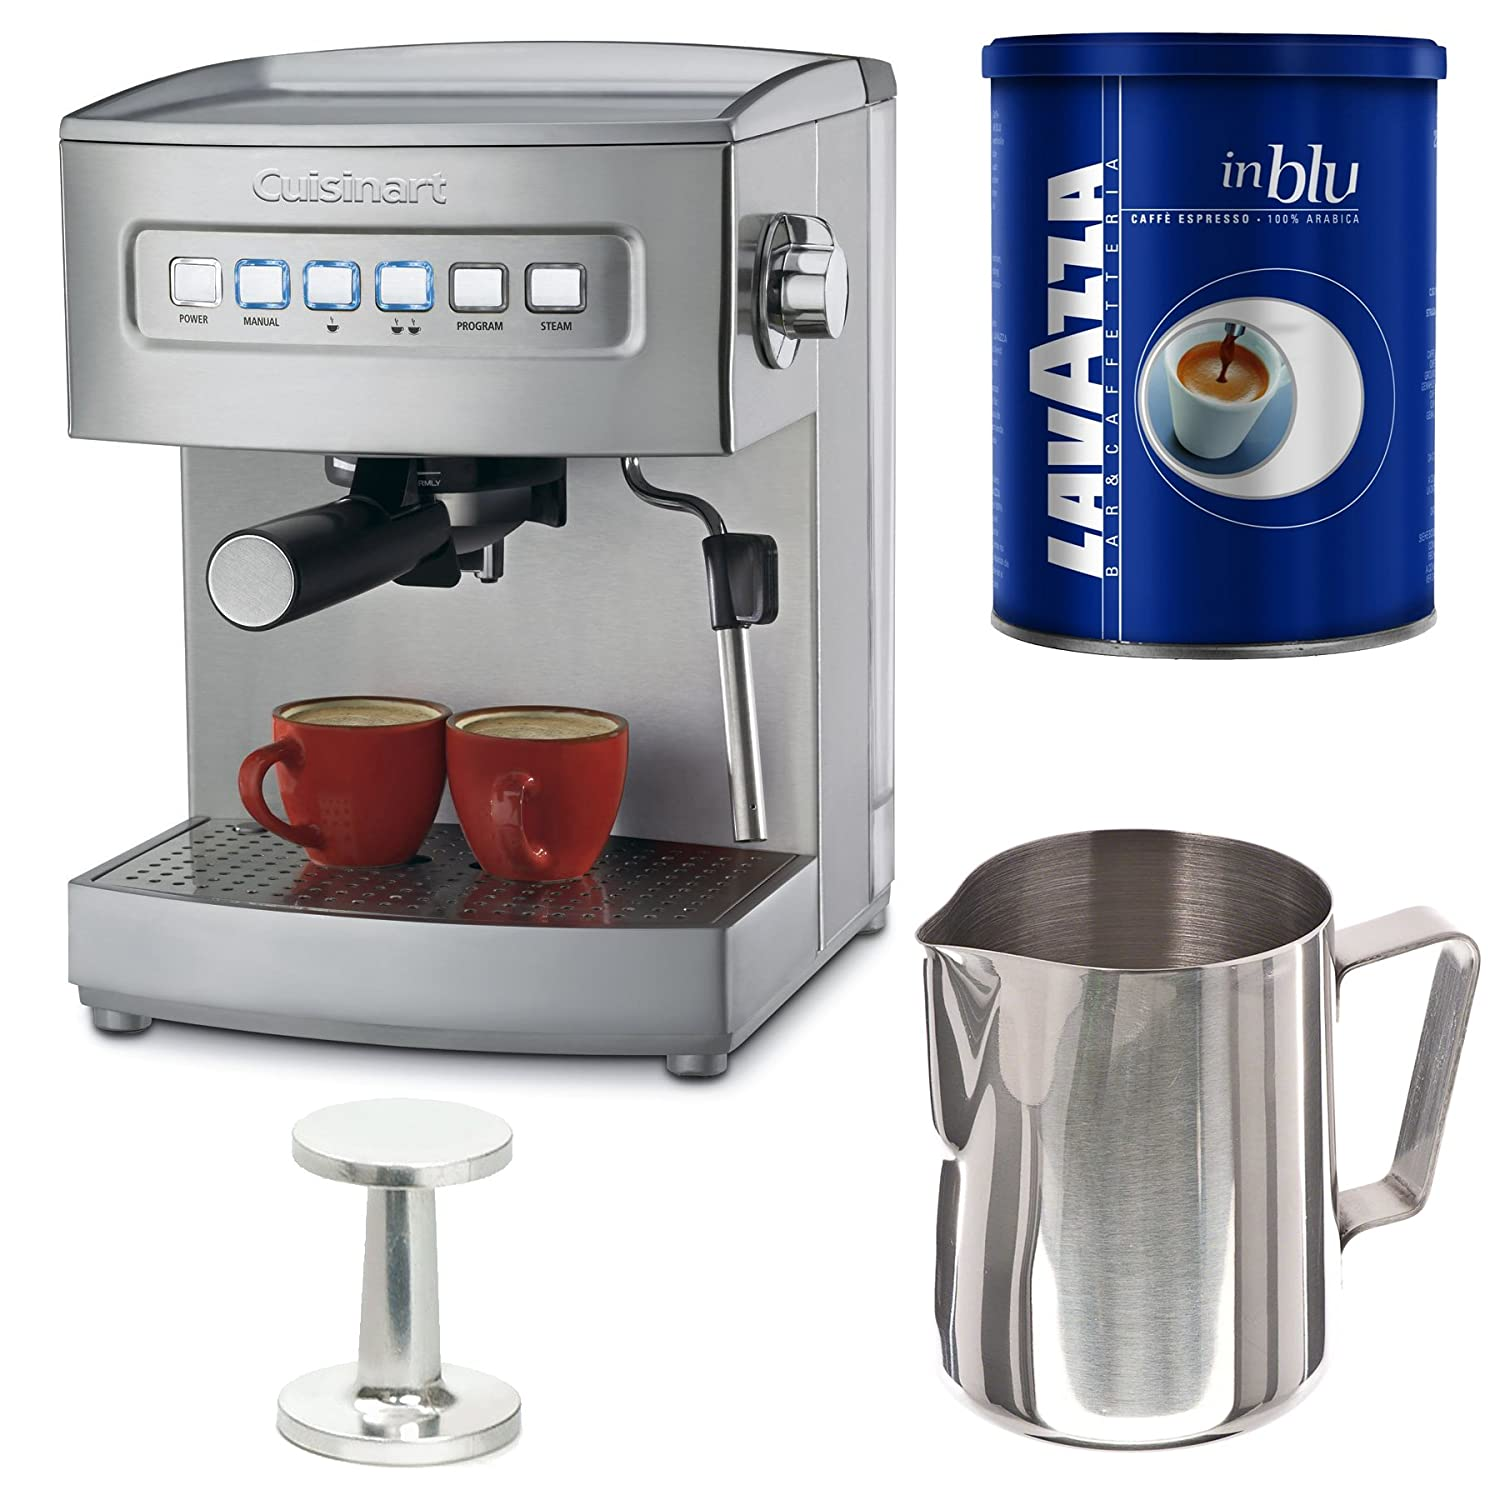 Cuisinart EM-200 Cuisinart Programmable 15-Bar Espresso Maker with Espresso Tamper (50/60mm Size) + 20 oz Frothing Pitcher and Lavazza In Blu Espresso Coffee (8.8oz Can) Bundle staresso mini portable espresso maker coffee machine second generation